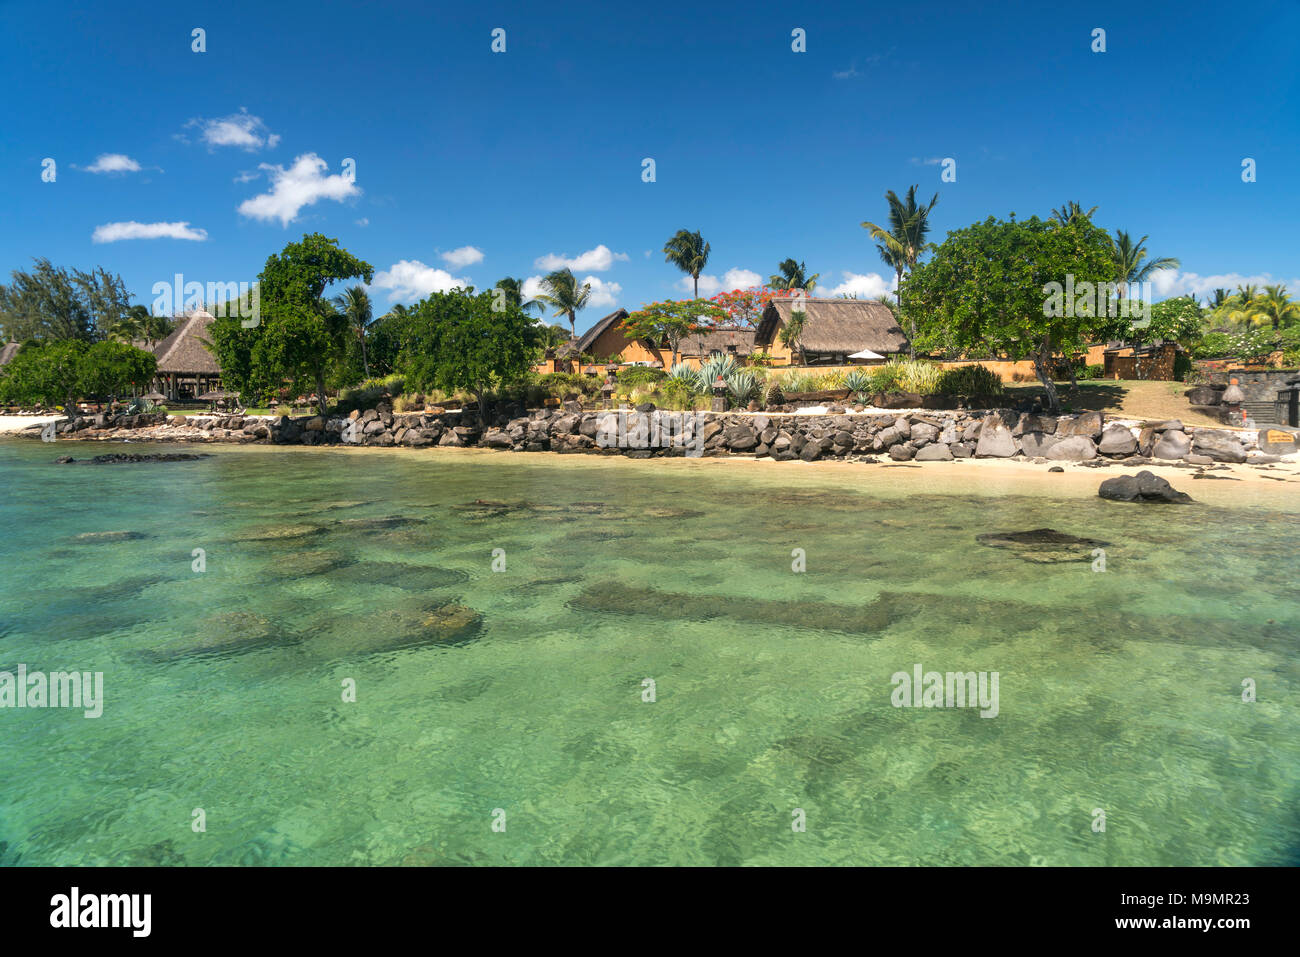 Coast at Oberoi Hotel, Turtle Bay, Mauritius - Stock Image